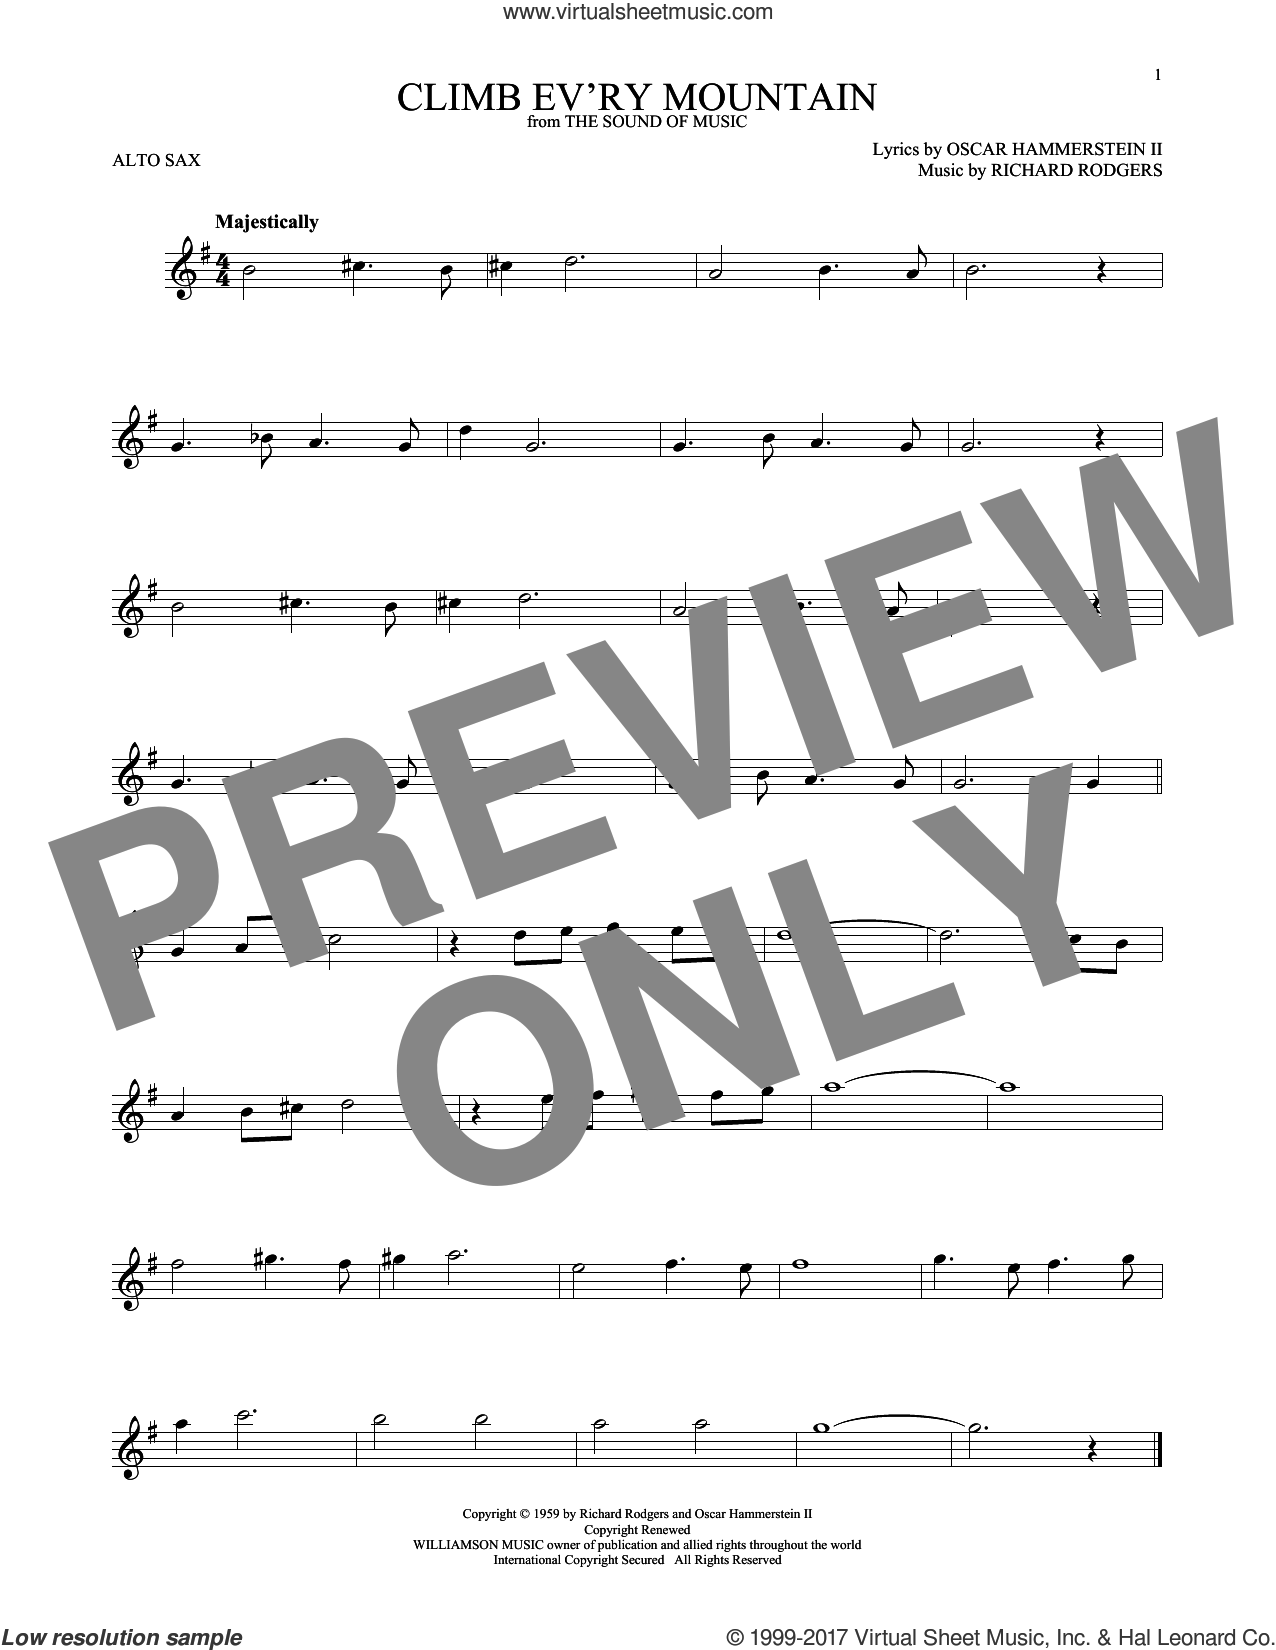 Climb Ev'ry Mountain sheet music for alto saxophone solo by Rodgers & Hammerstein, Oscar II Hammerstein and Richard Rodgers, intermediate skill level